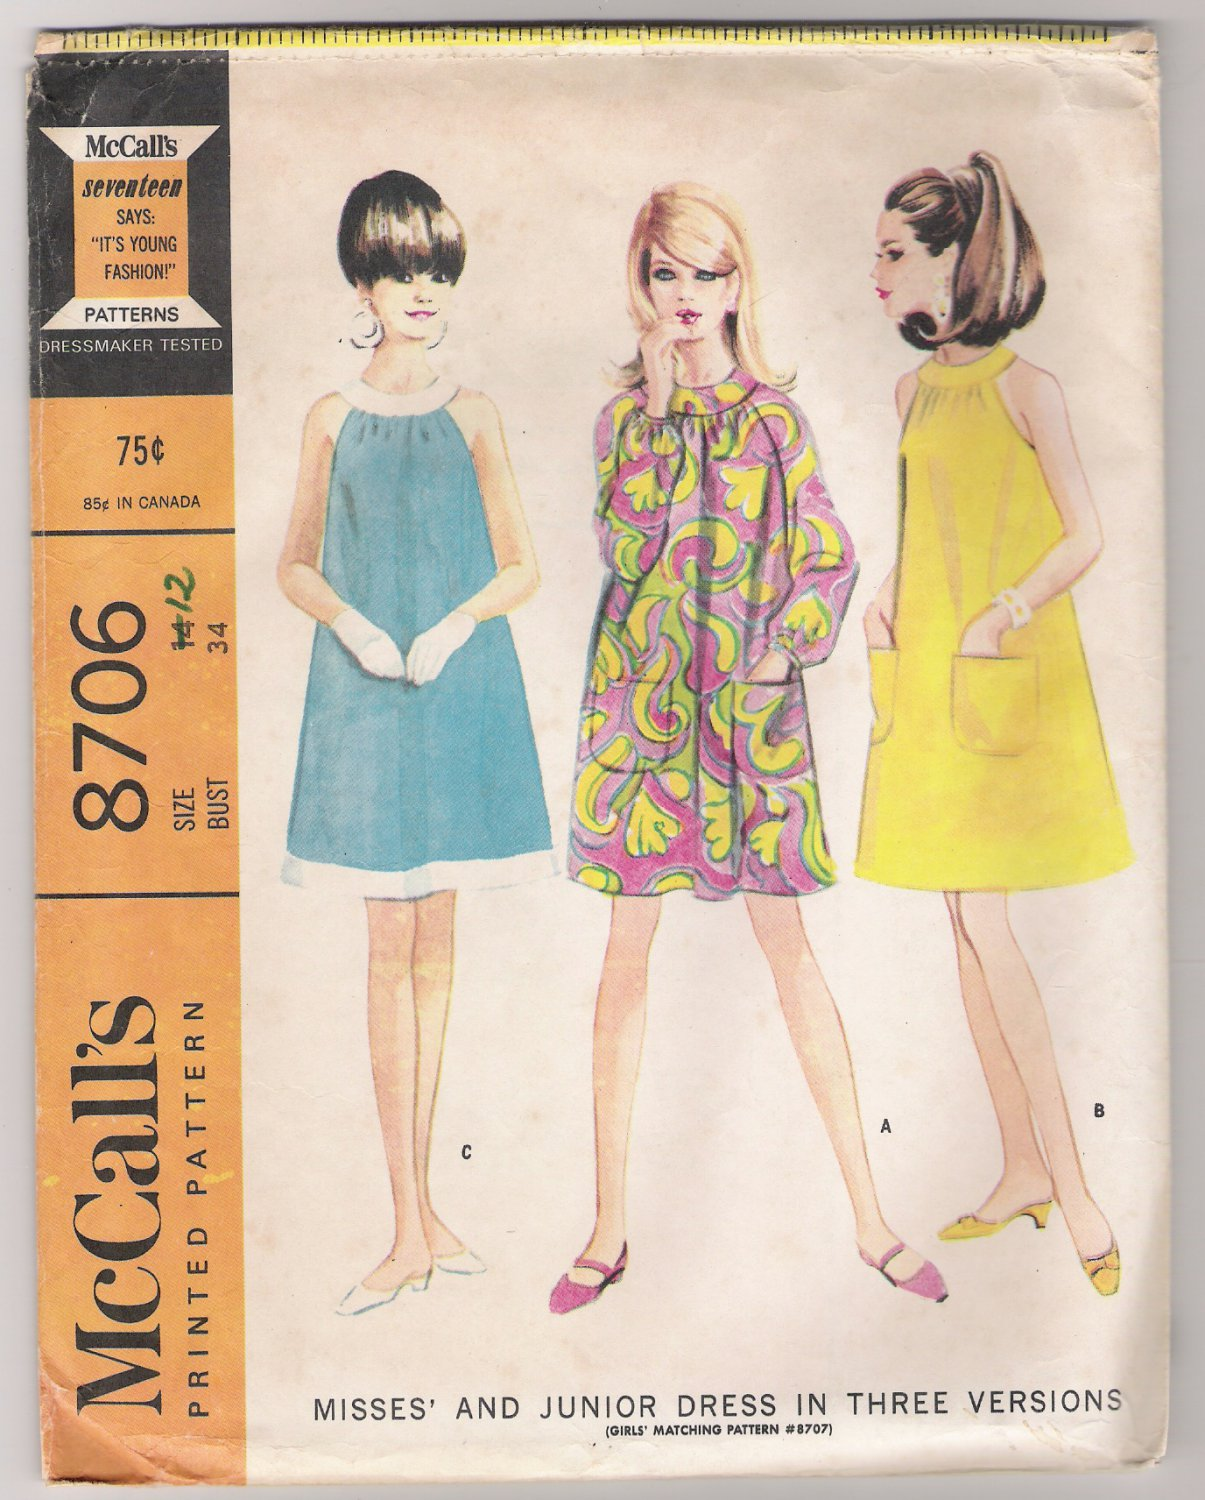 Misses' and Junior Dress in Three Versions McCall's #8706 Sewing Pattern